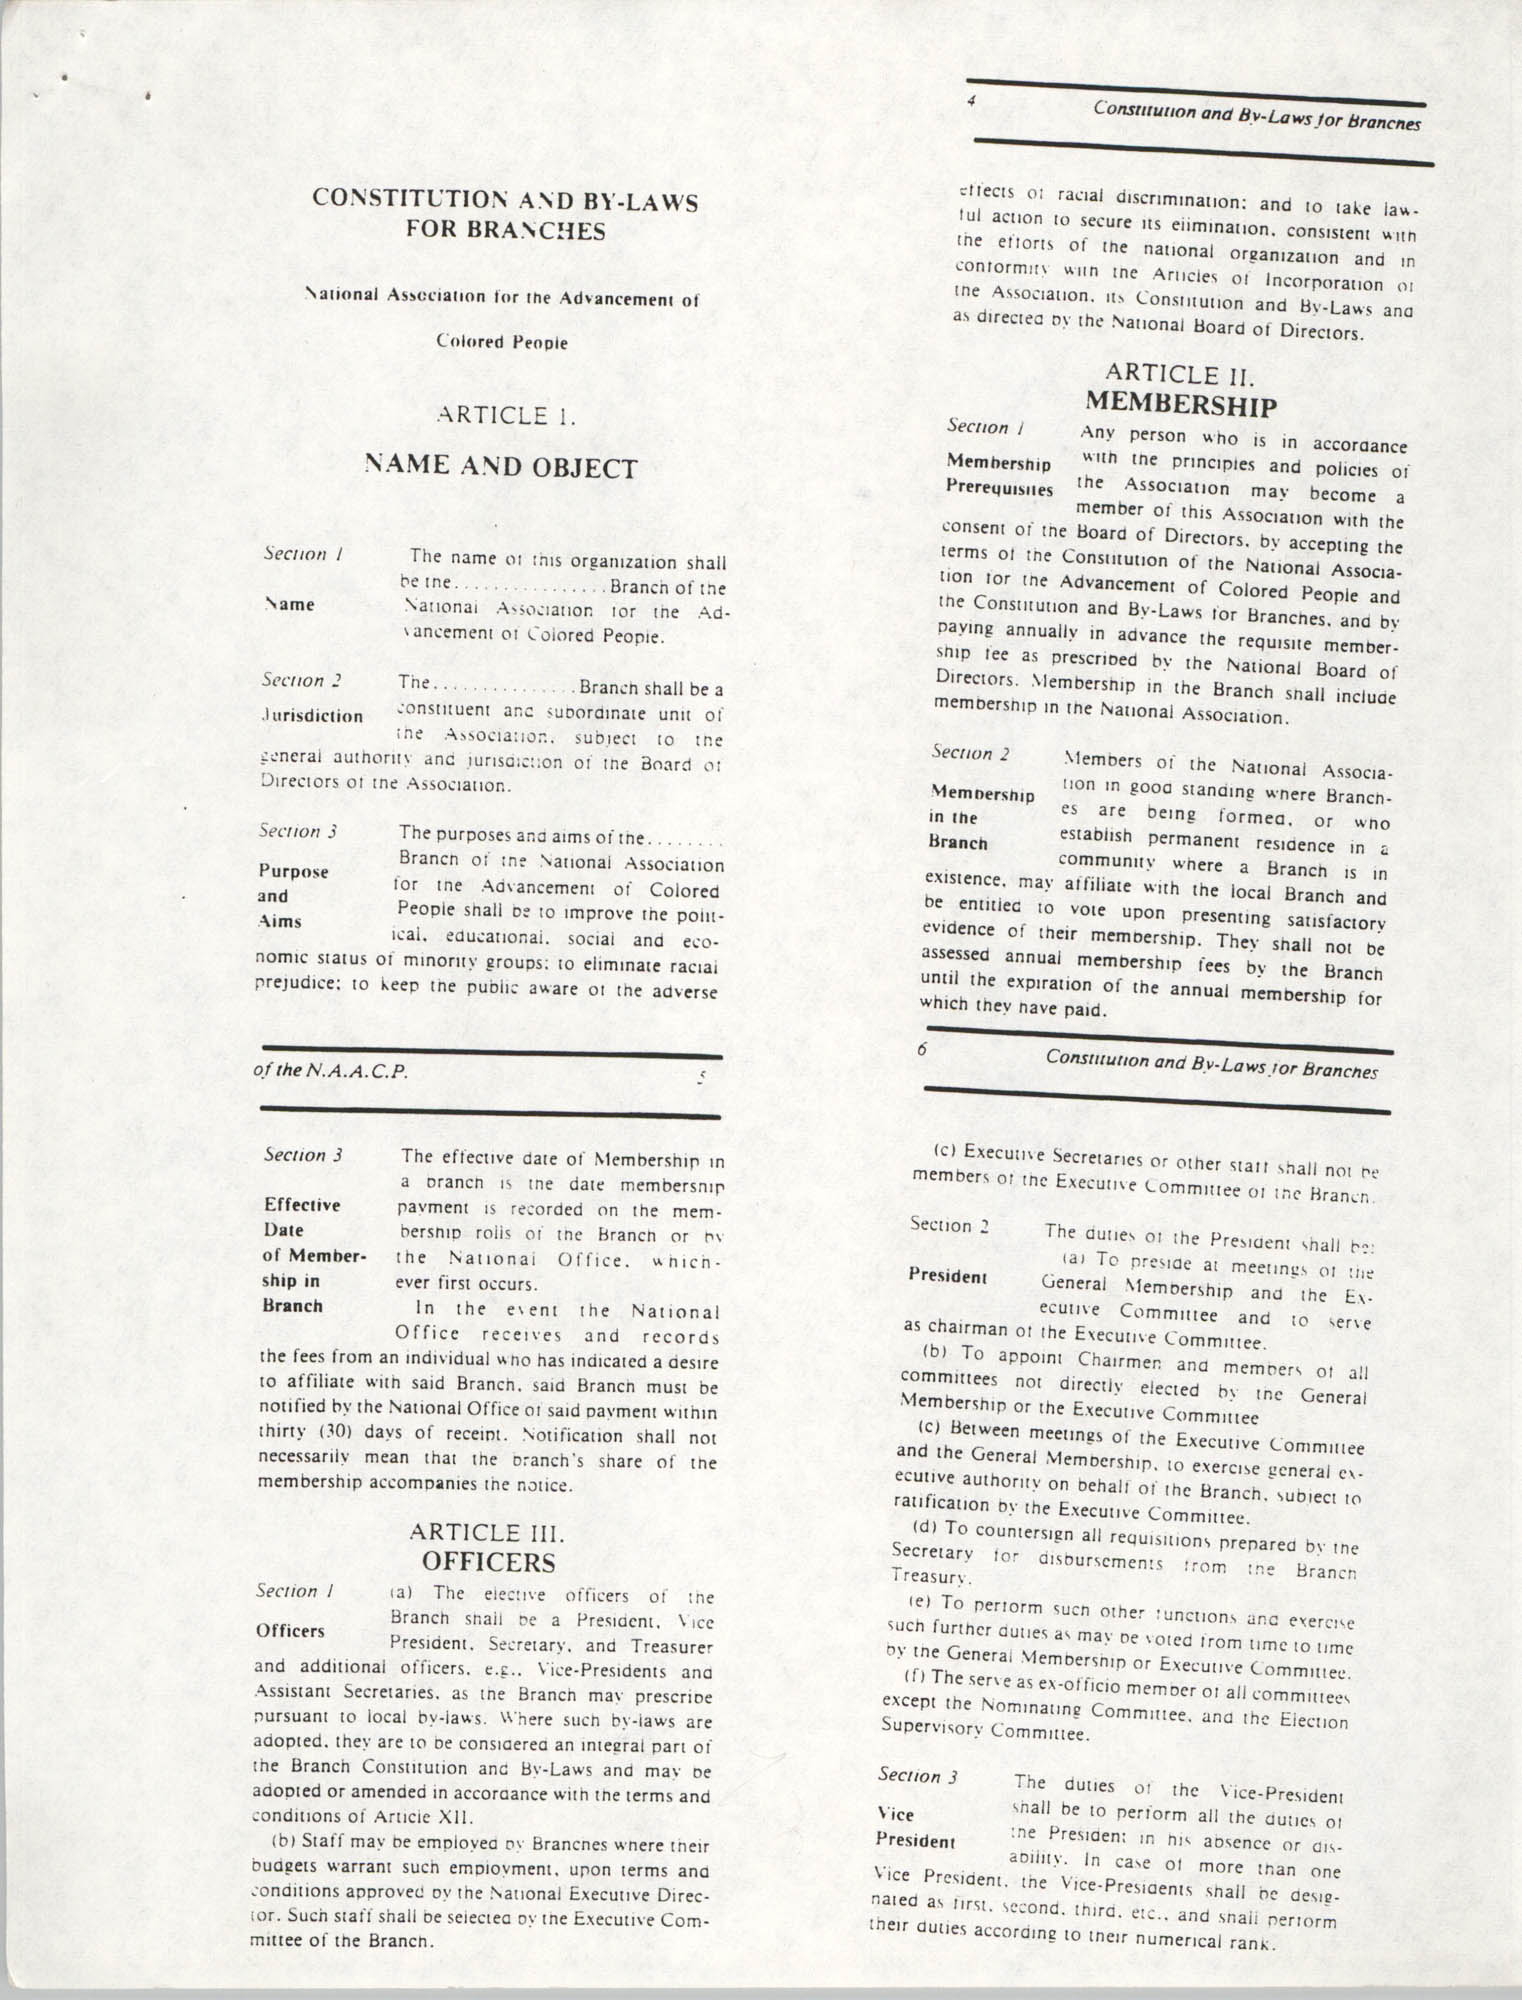 Constitution and By-Laws for Branches of the NAACP, May 1988, Pages 3